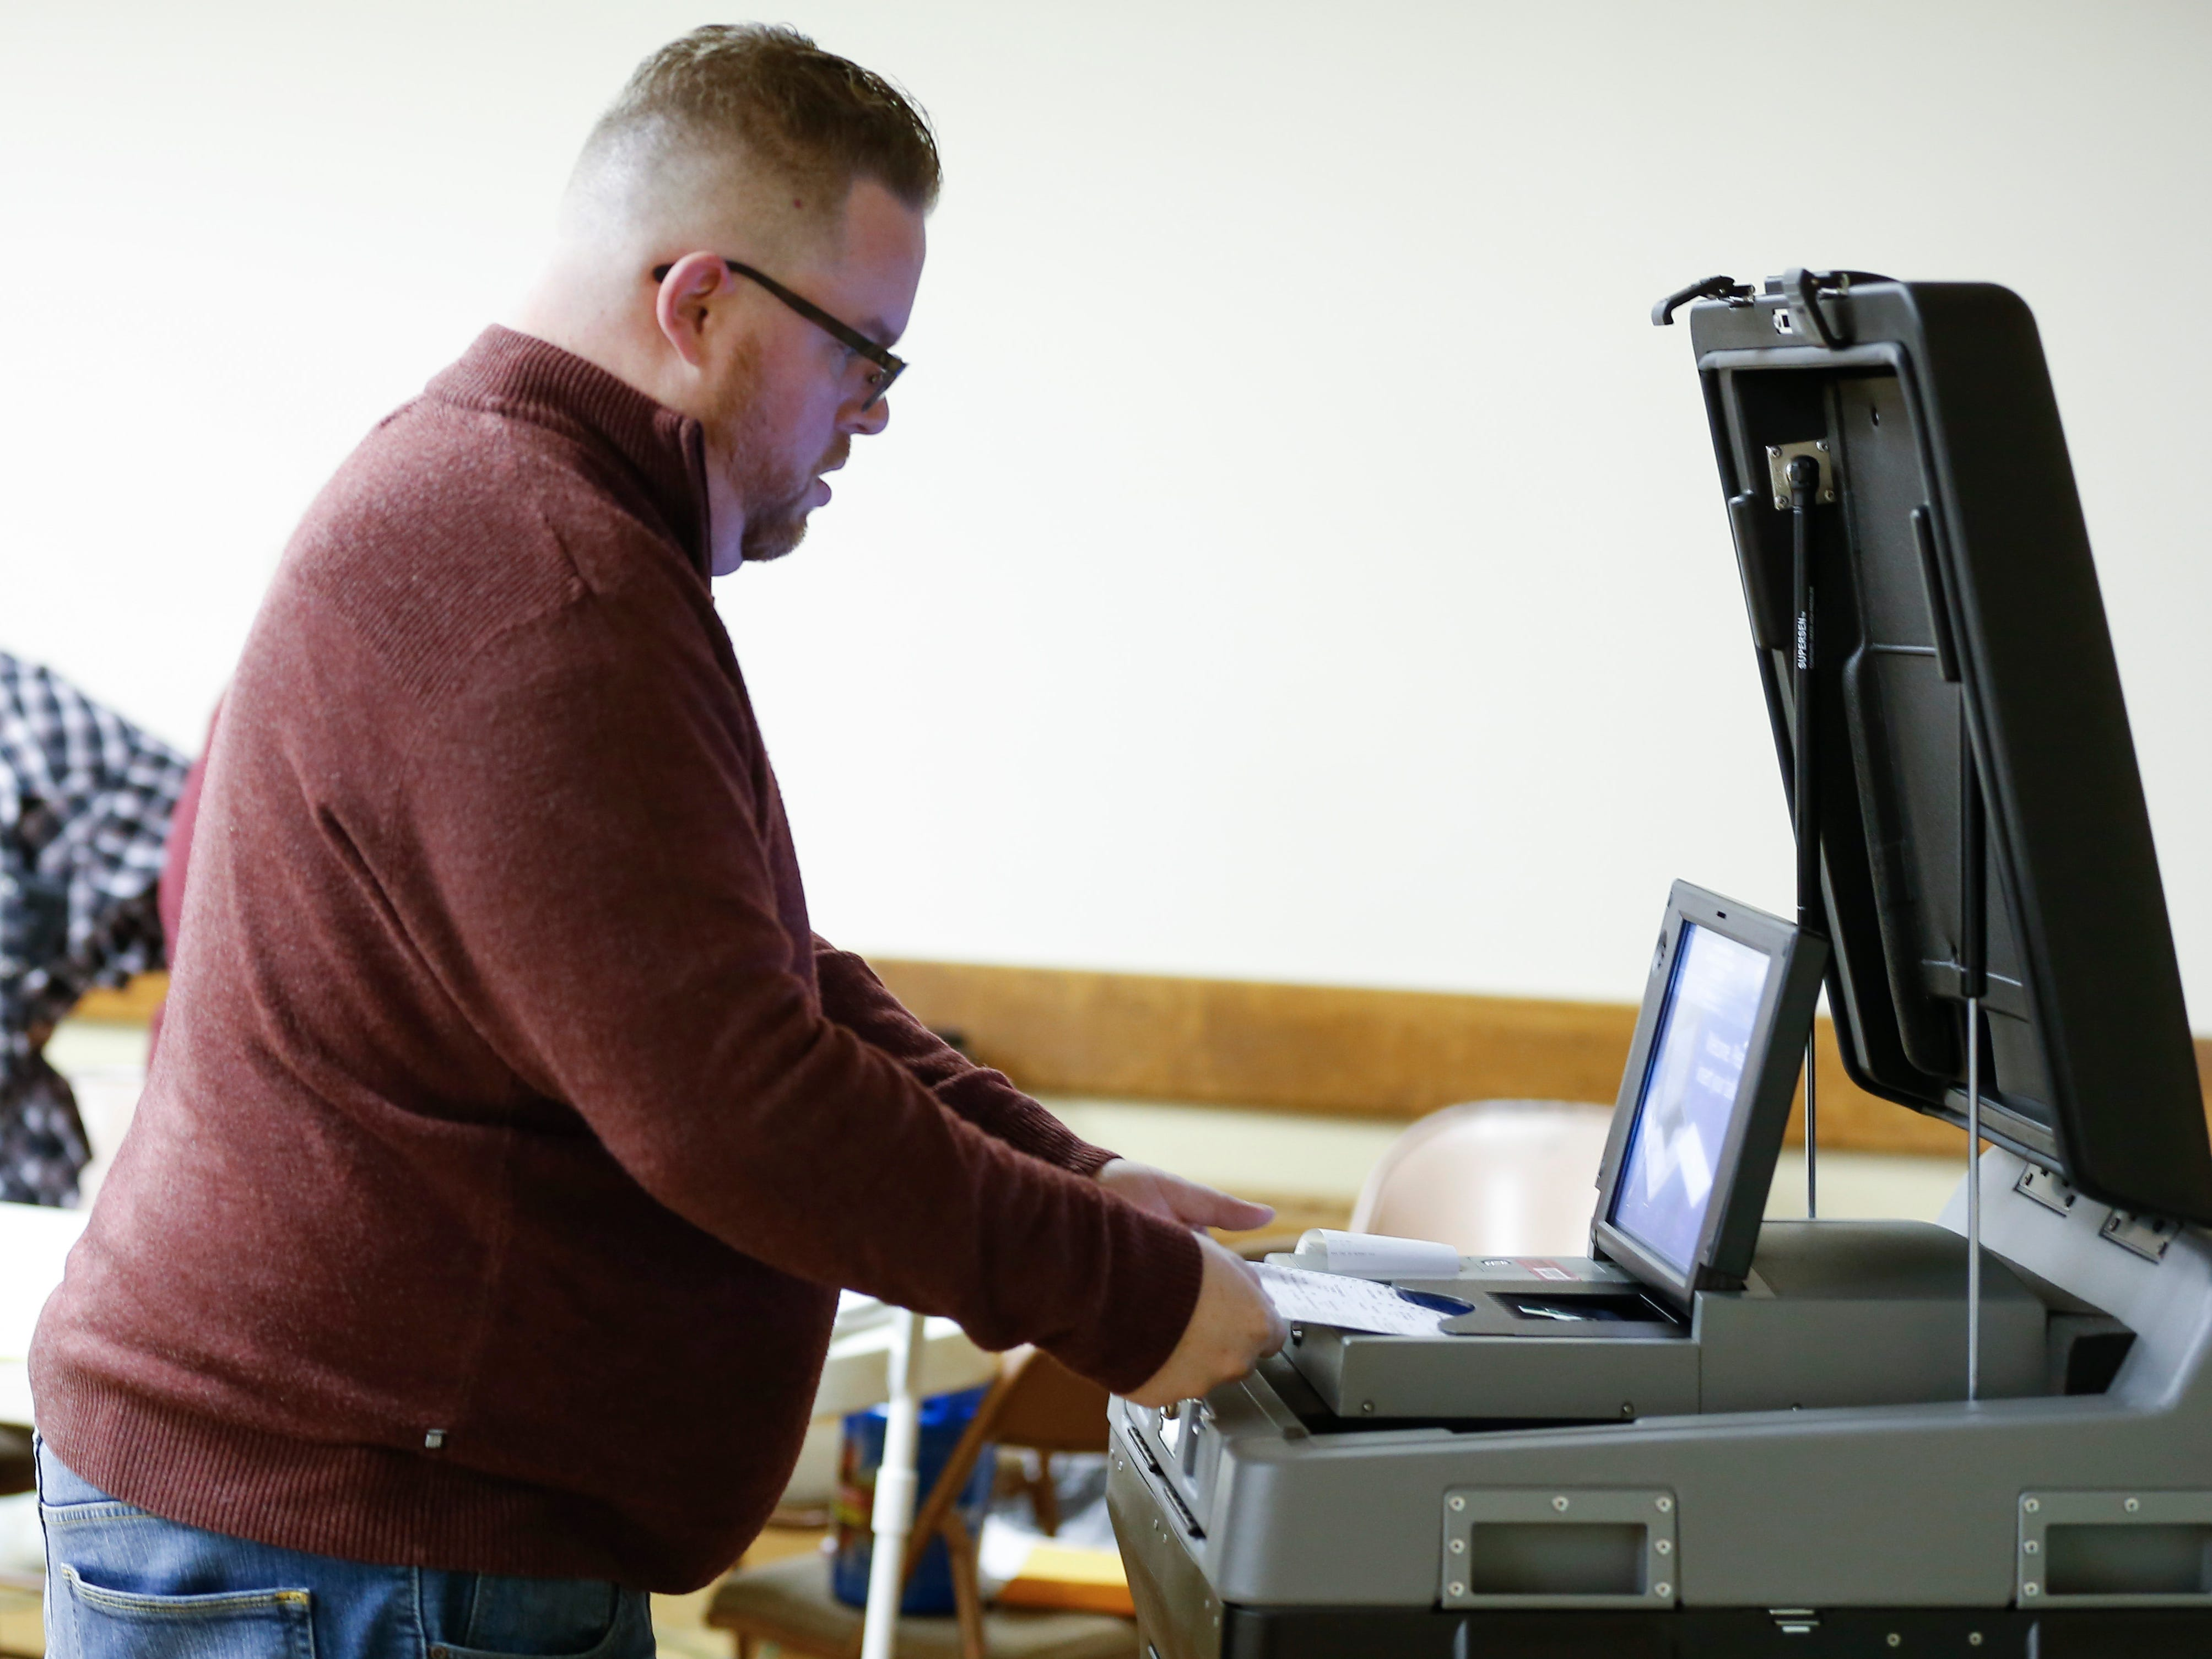 Andy White inserts his ballot into the voting machine at the Woodland Heights polling location on Tuesday, Nov. 6, 2018.